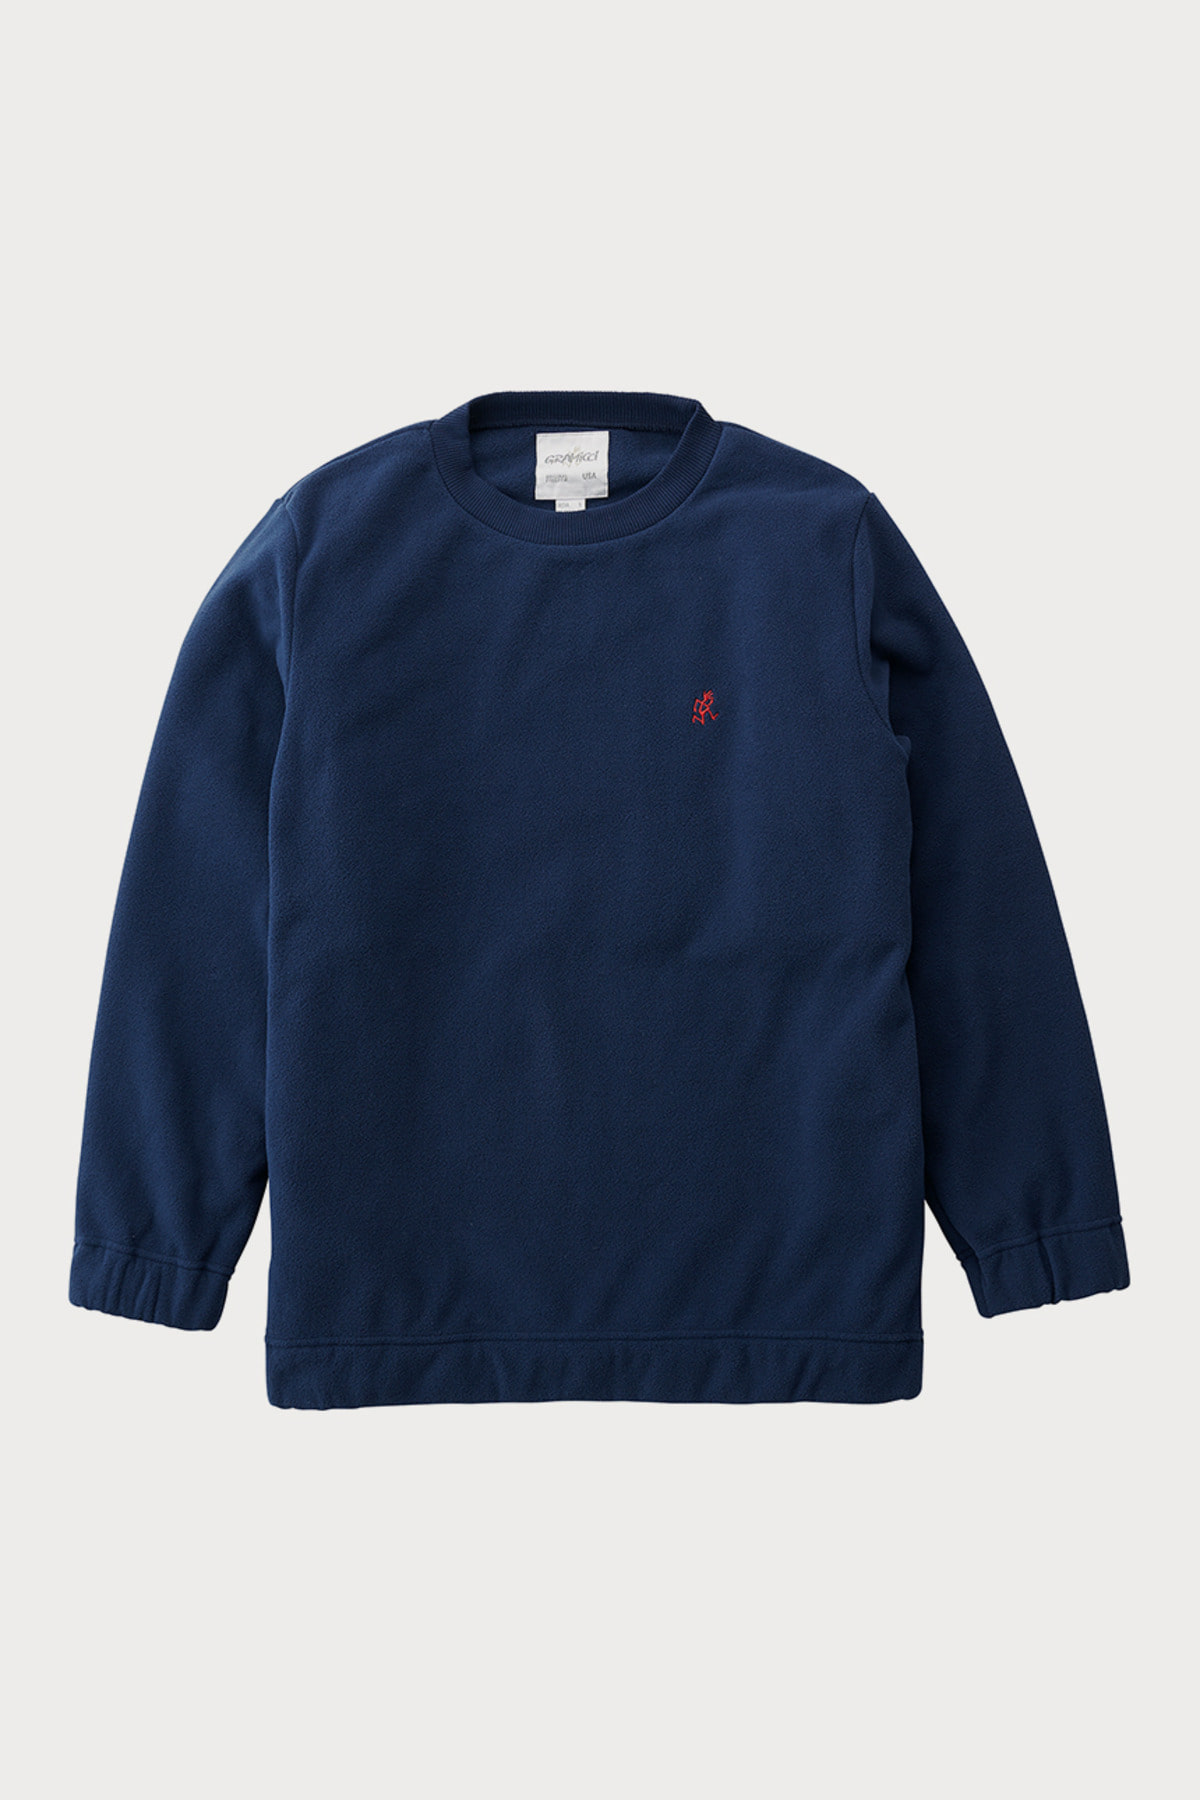 FLEECE CREW NECK NAVY